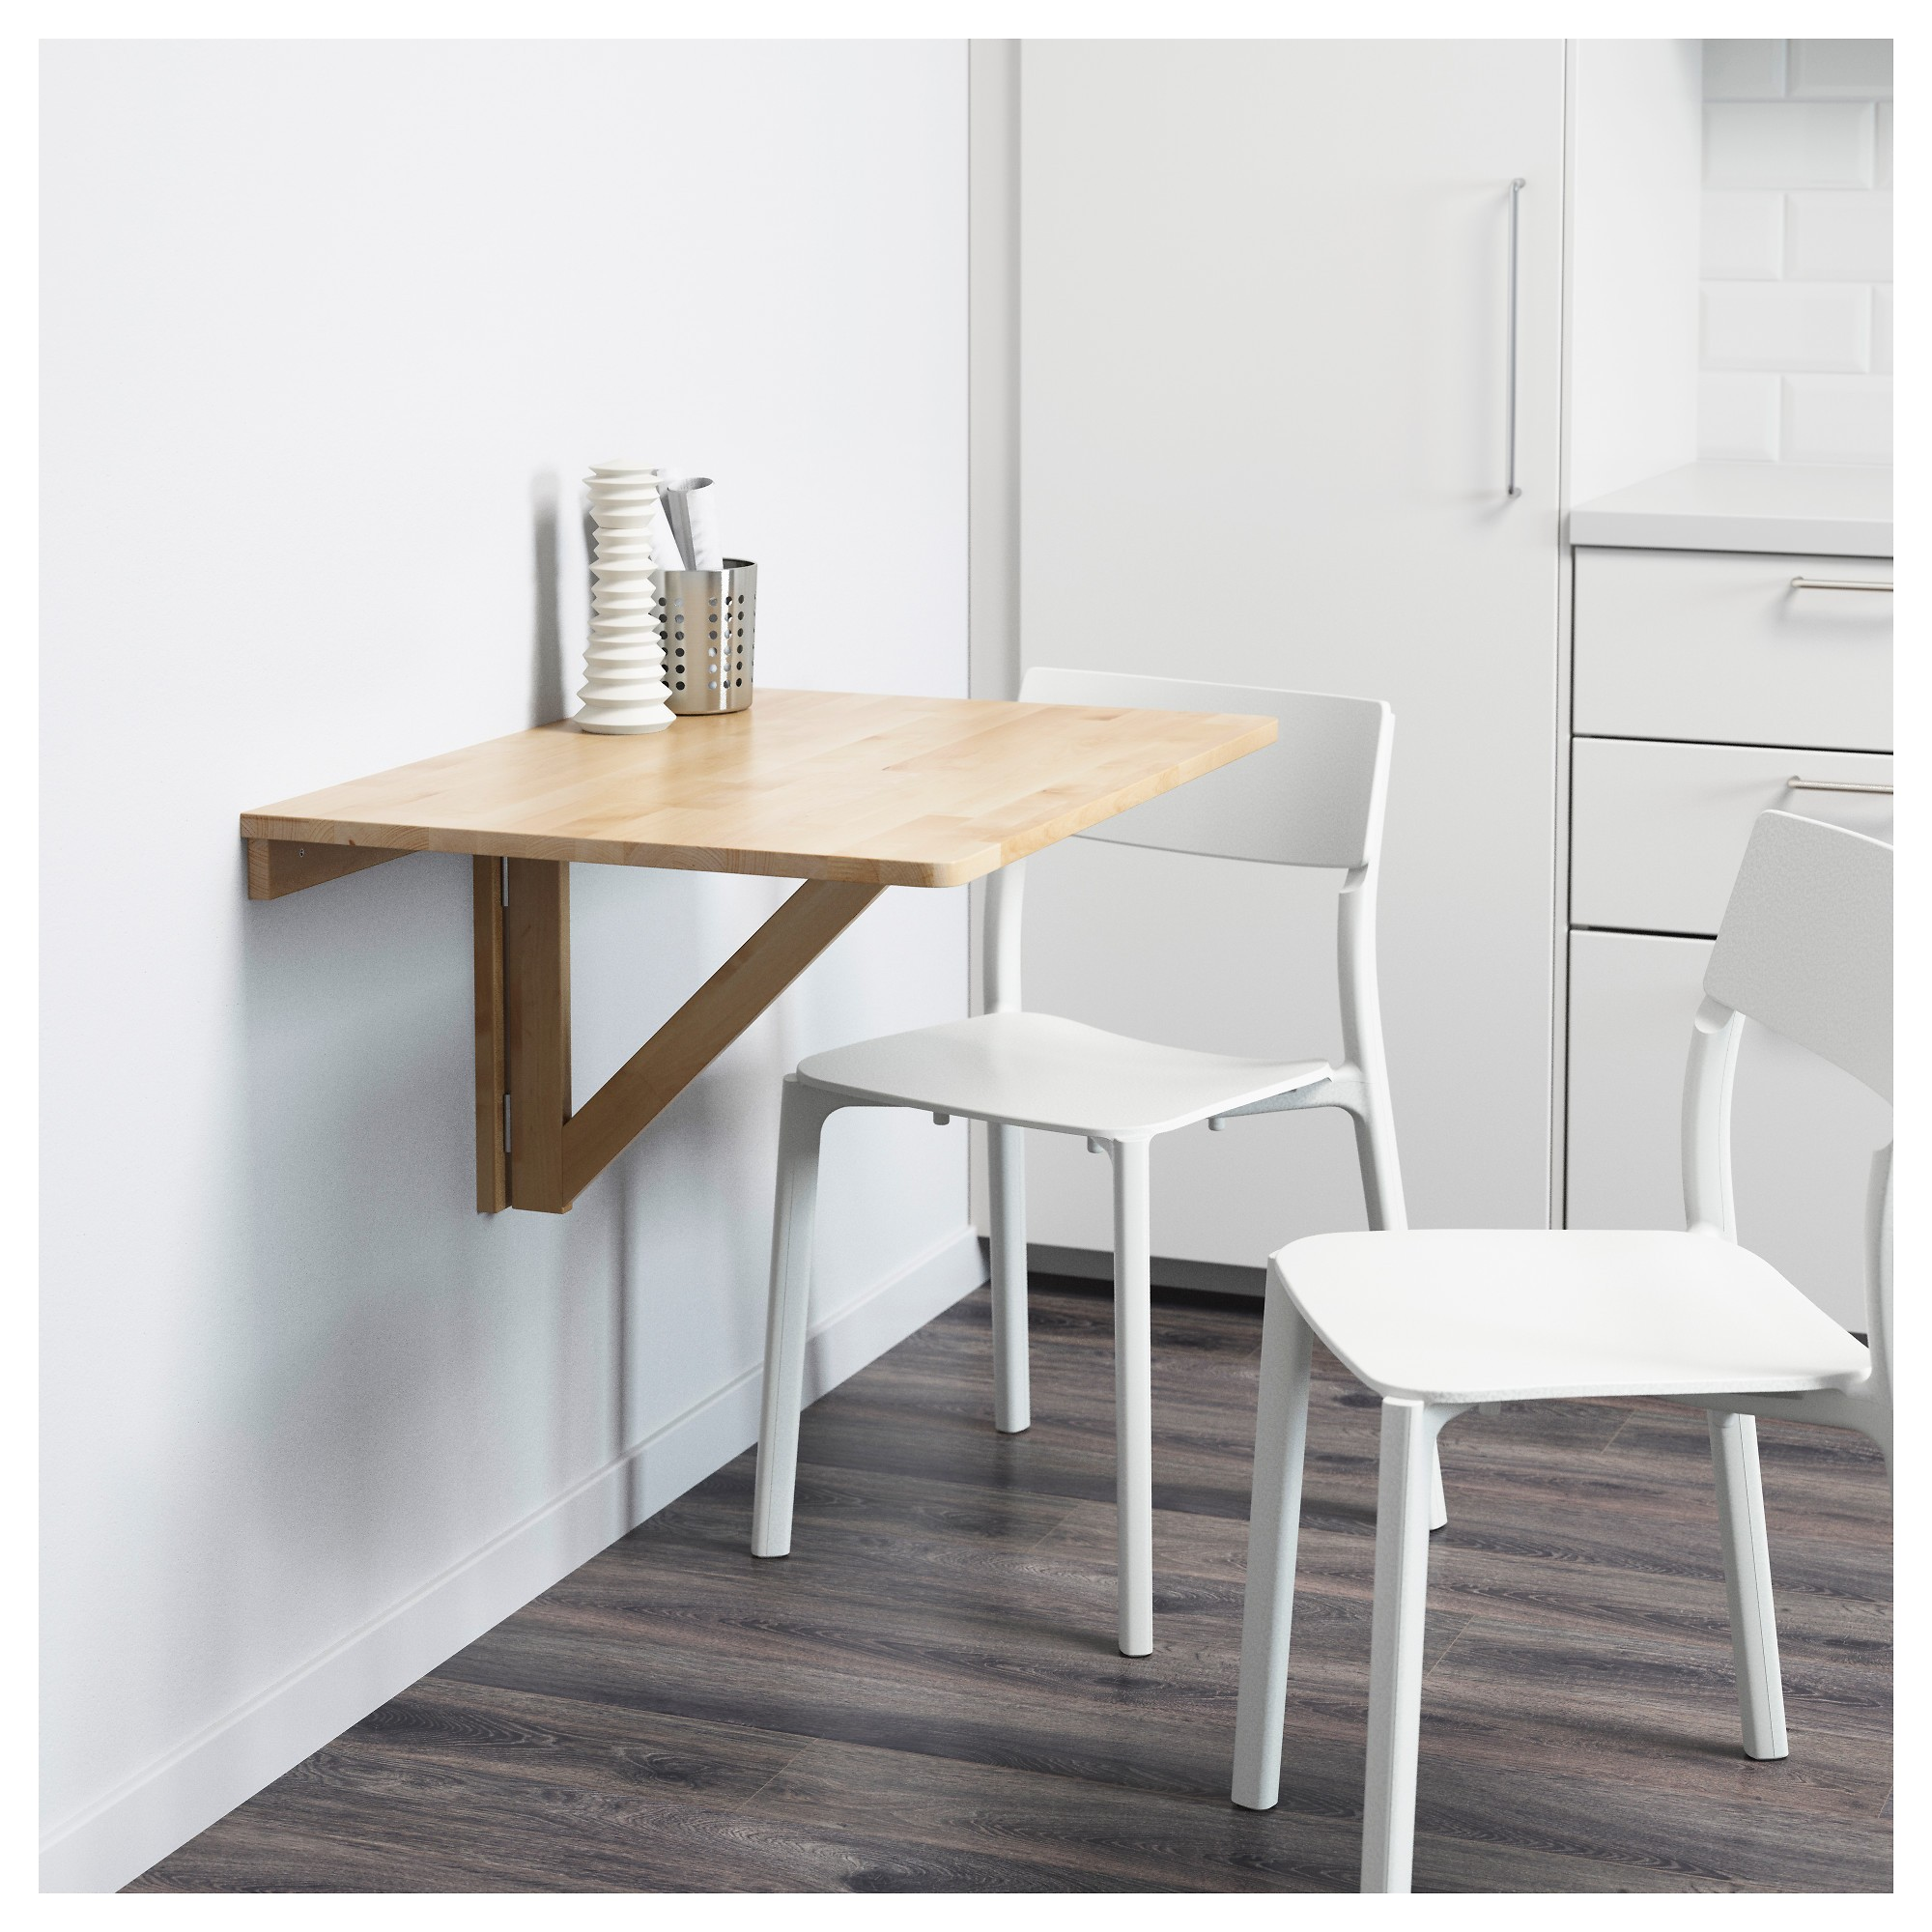 Table Cuisine Pliante Ikea Of Table Cuisine Pliante Murale Ikea Cuisine Id Es De